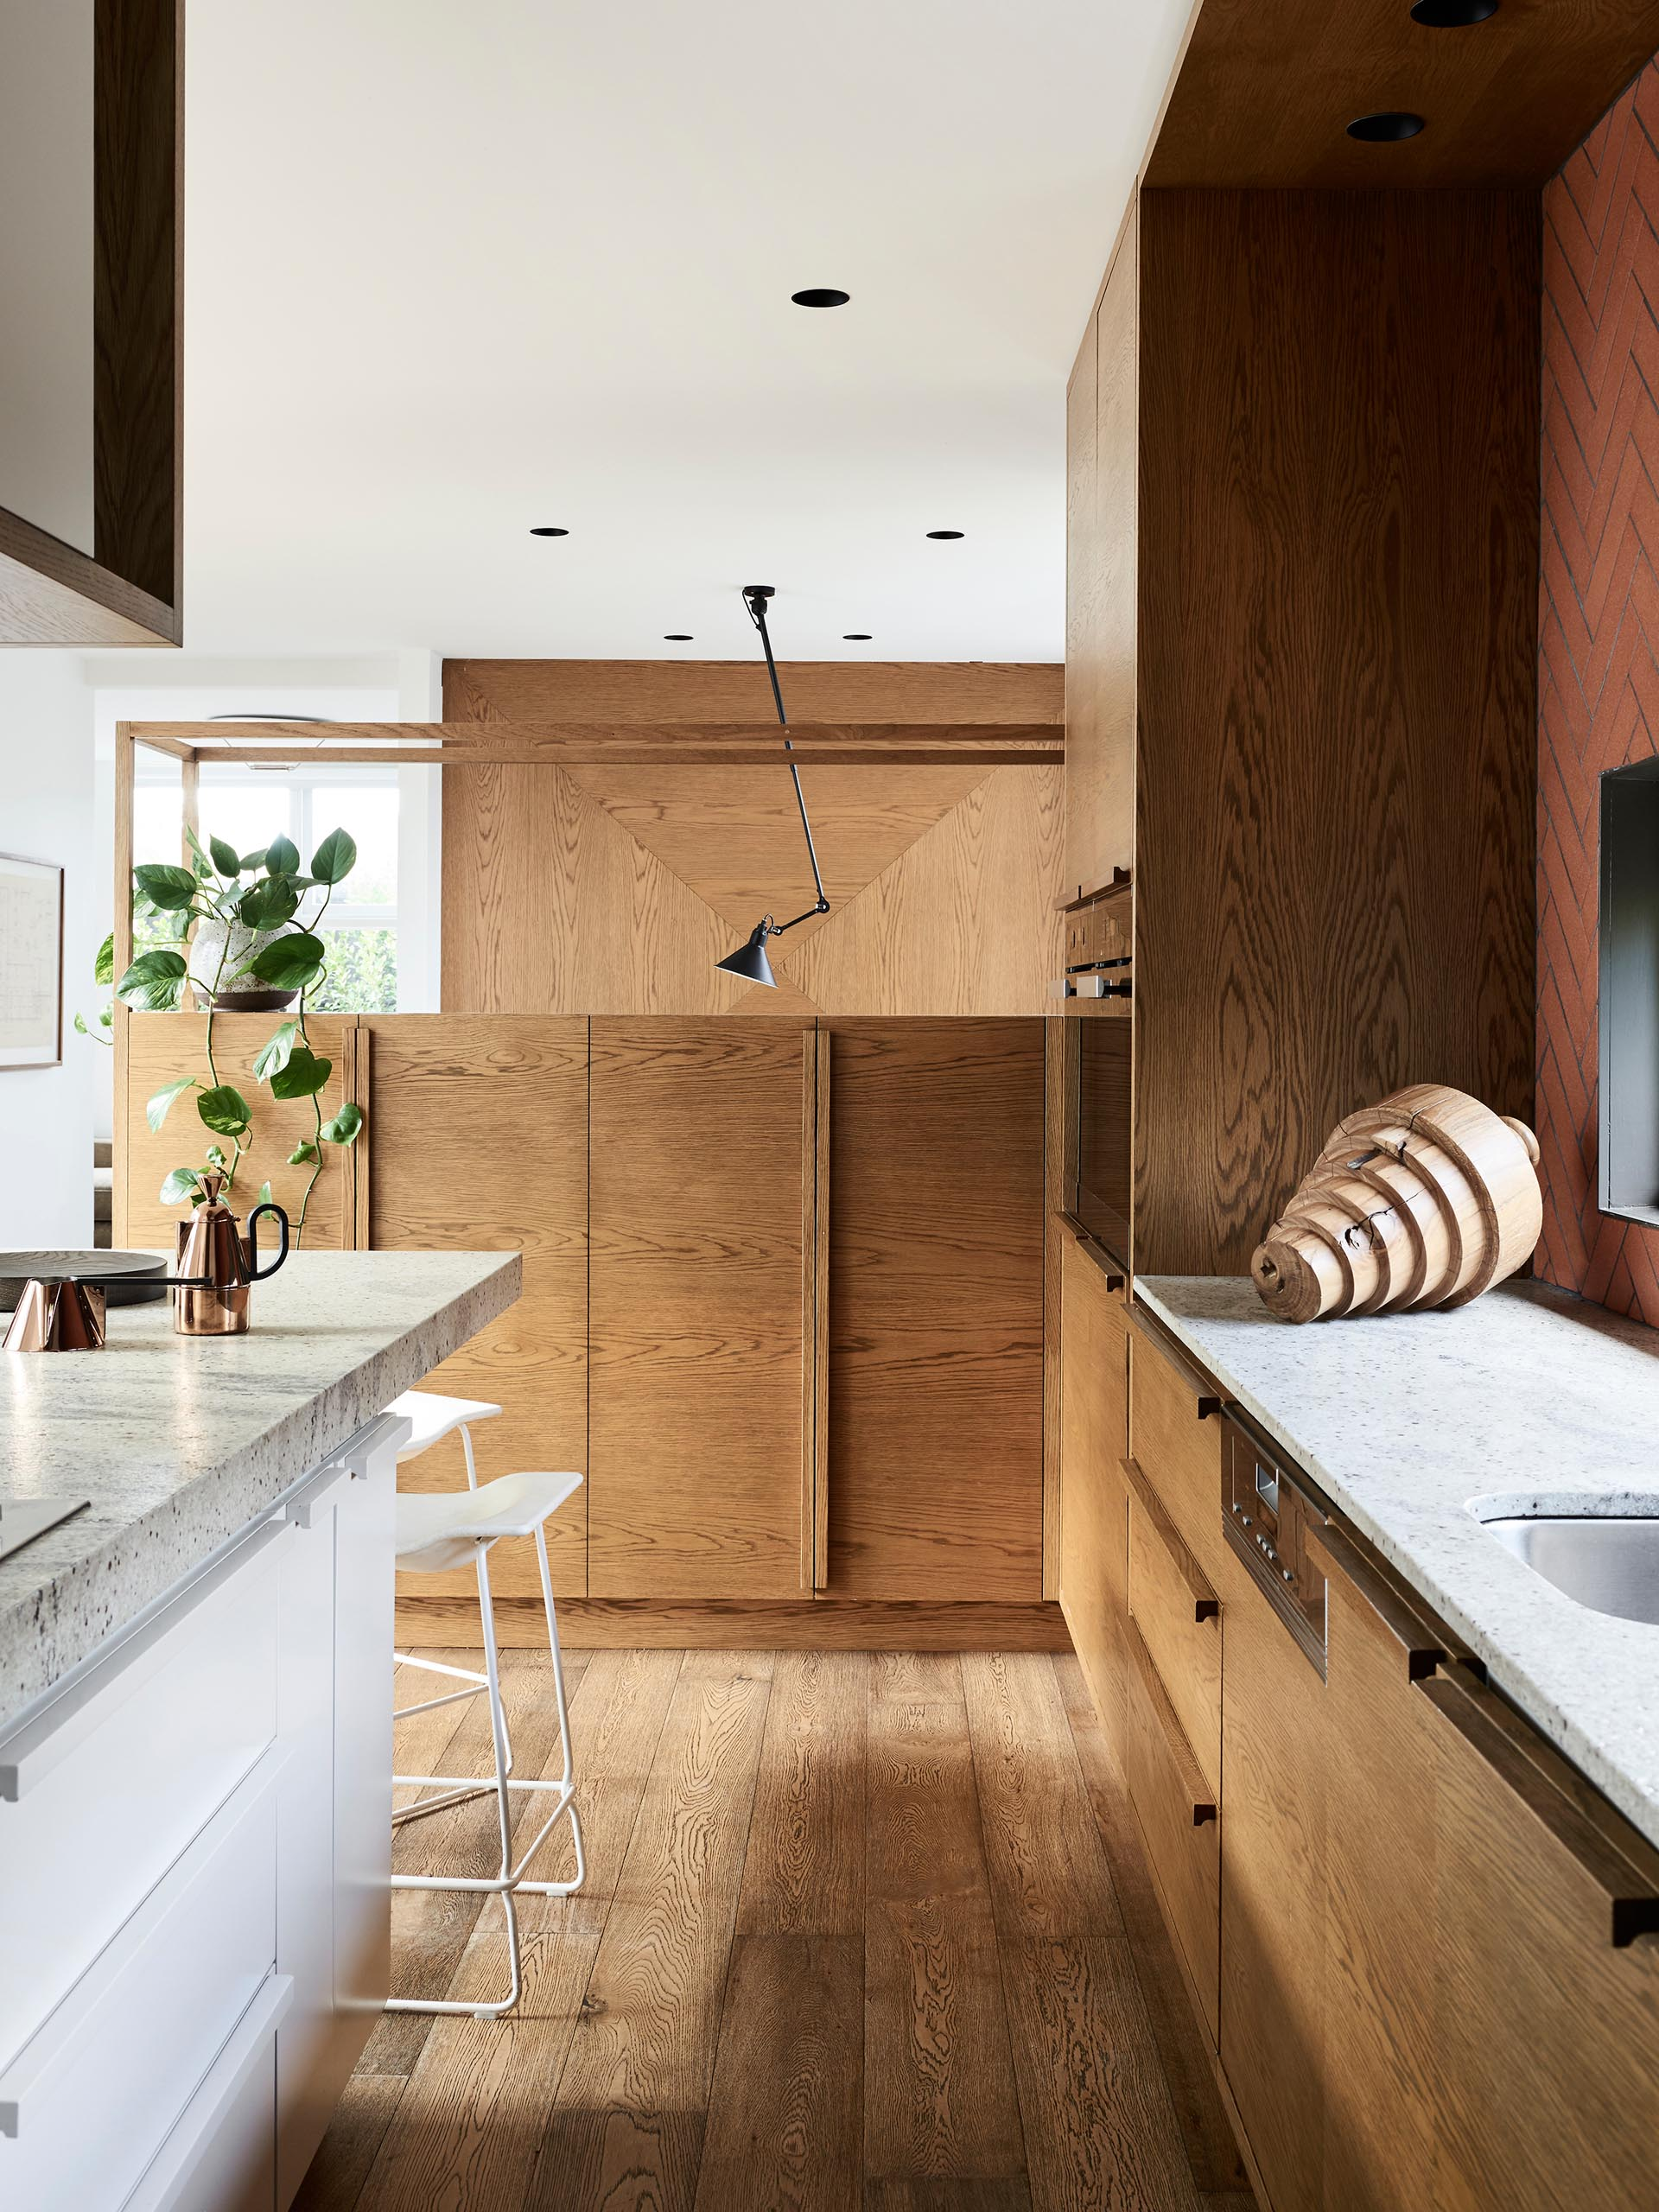 This kitchen has minimalist wood and white cabinets have been paired with a long island, and a terracotta colored tile backsplash that surrounds the window.